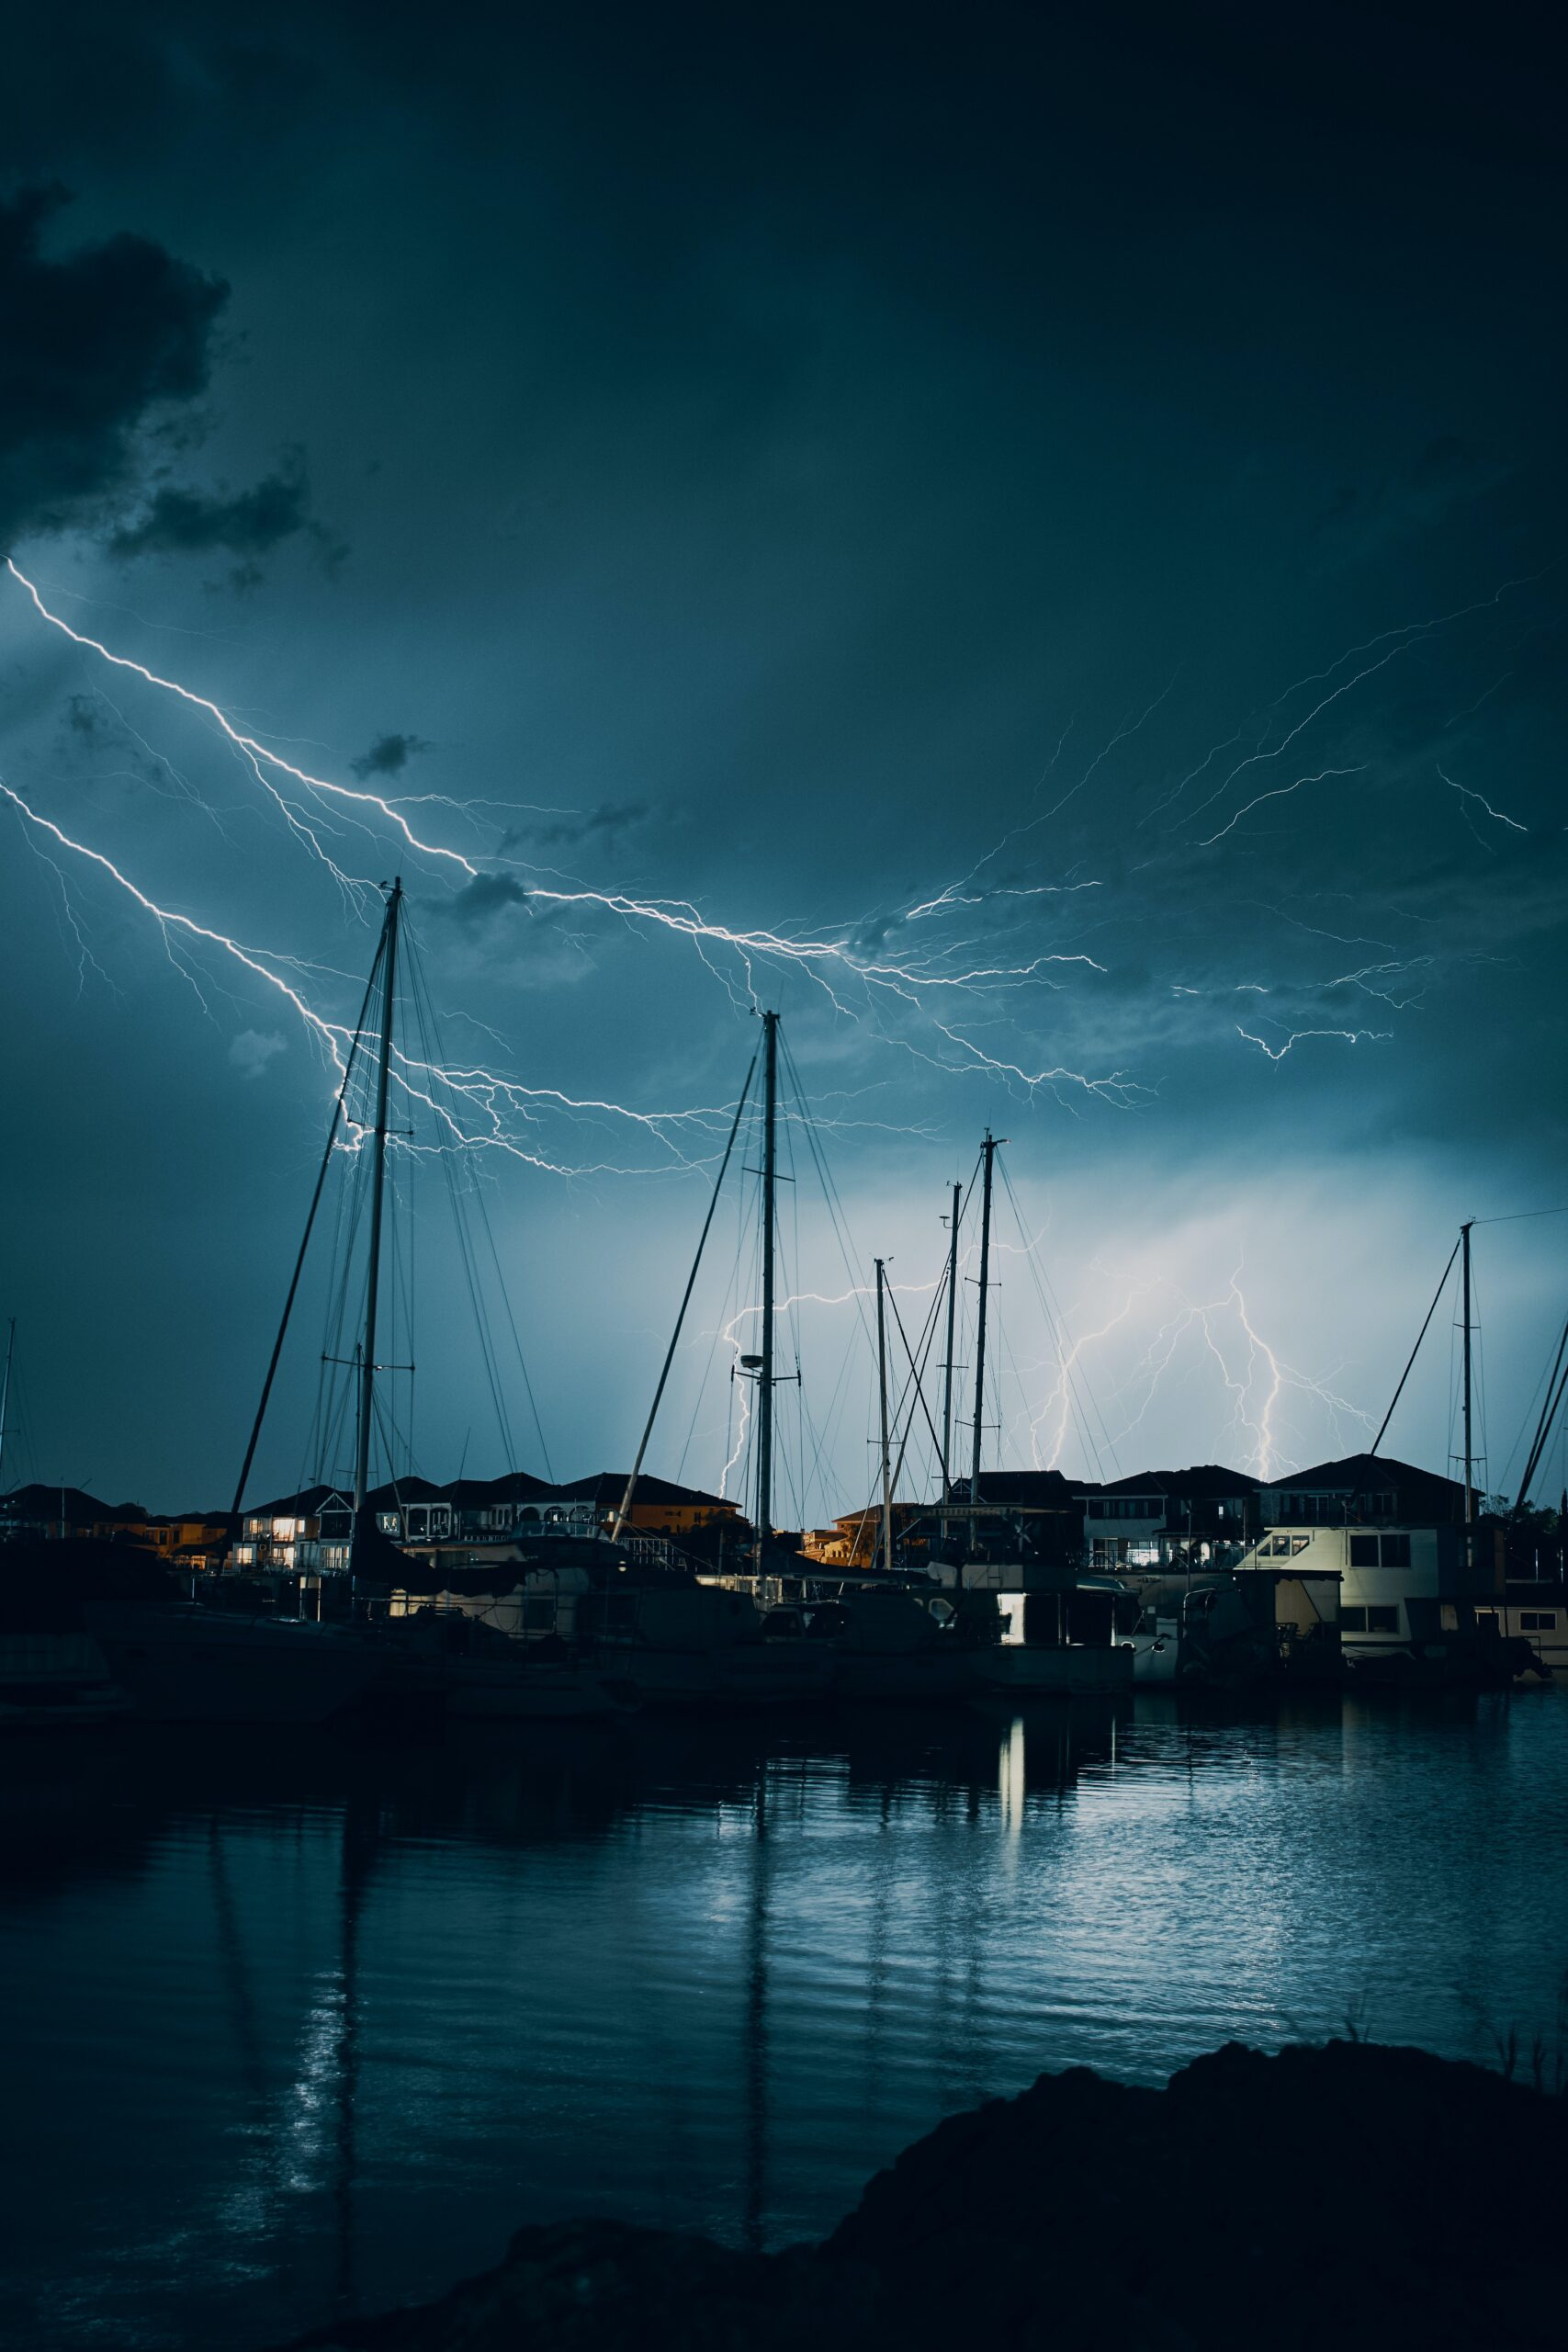 boats on lake with storm